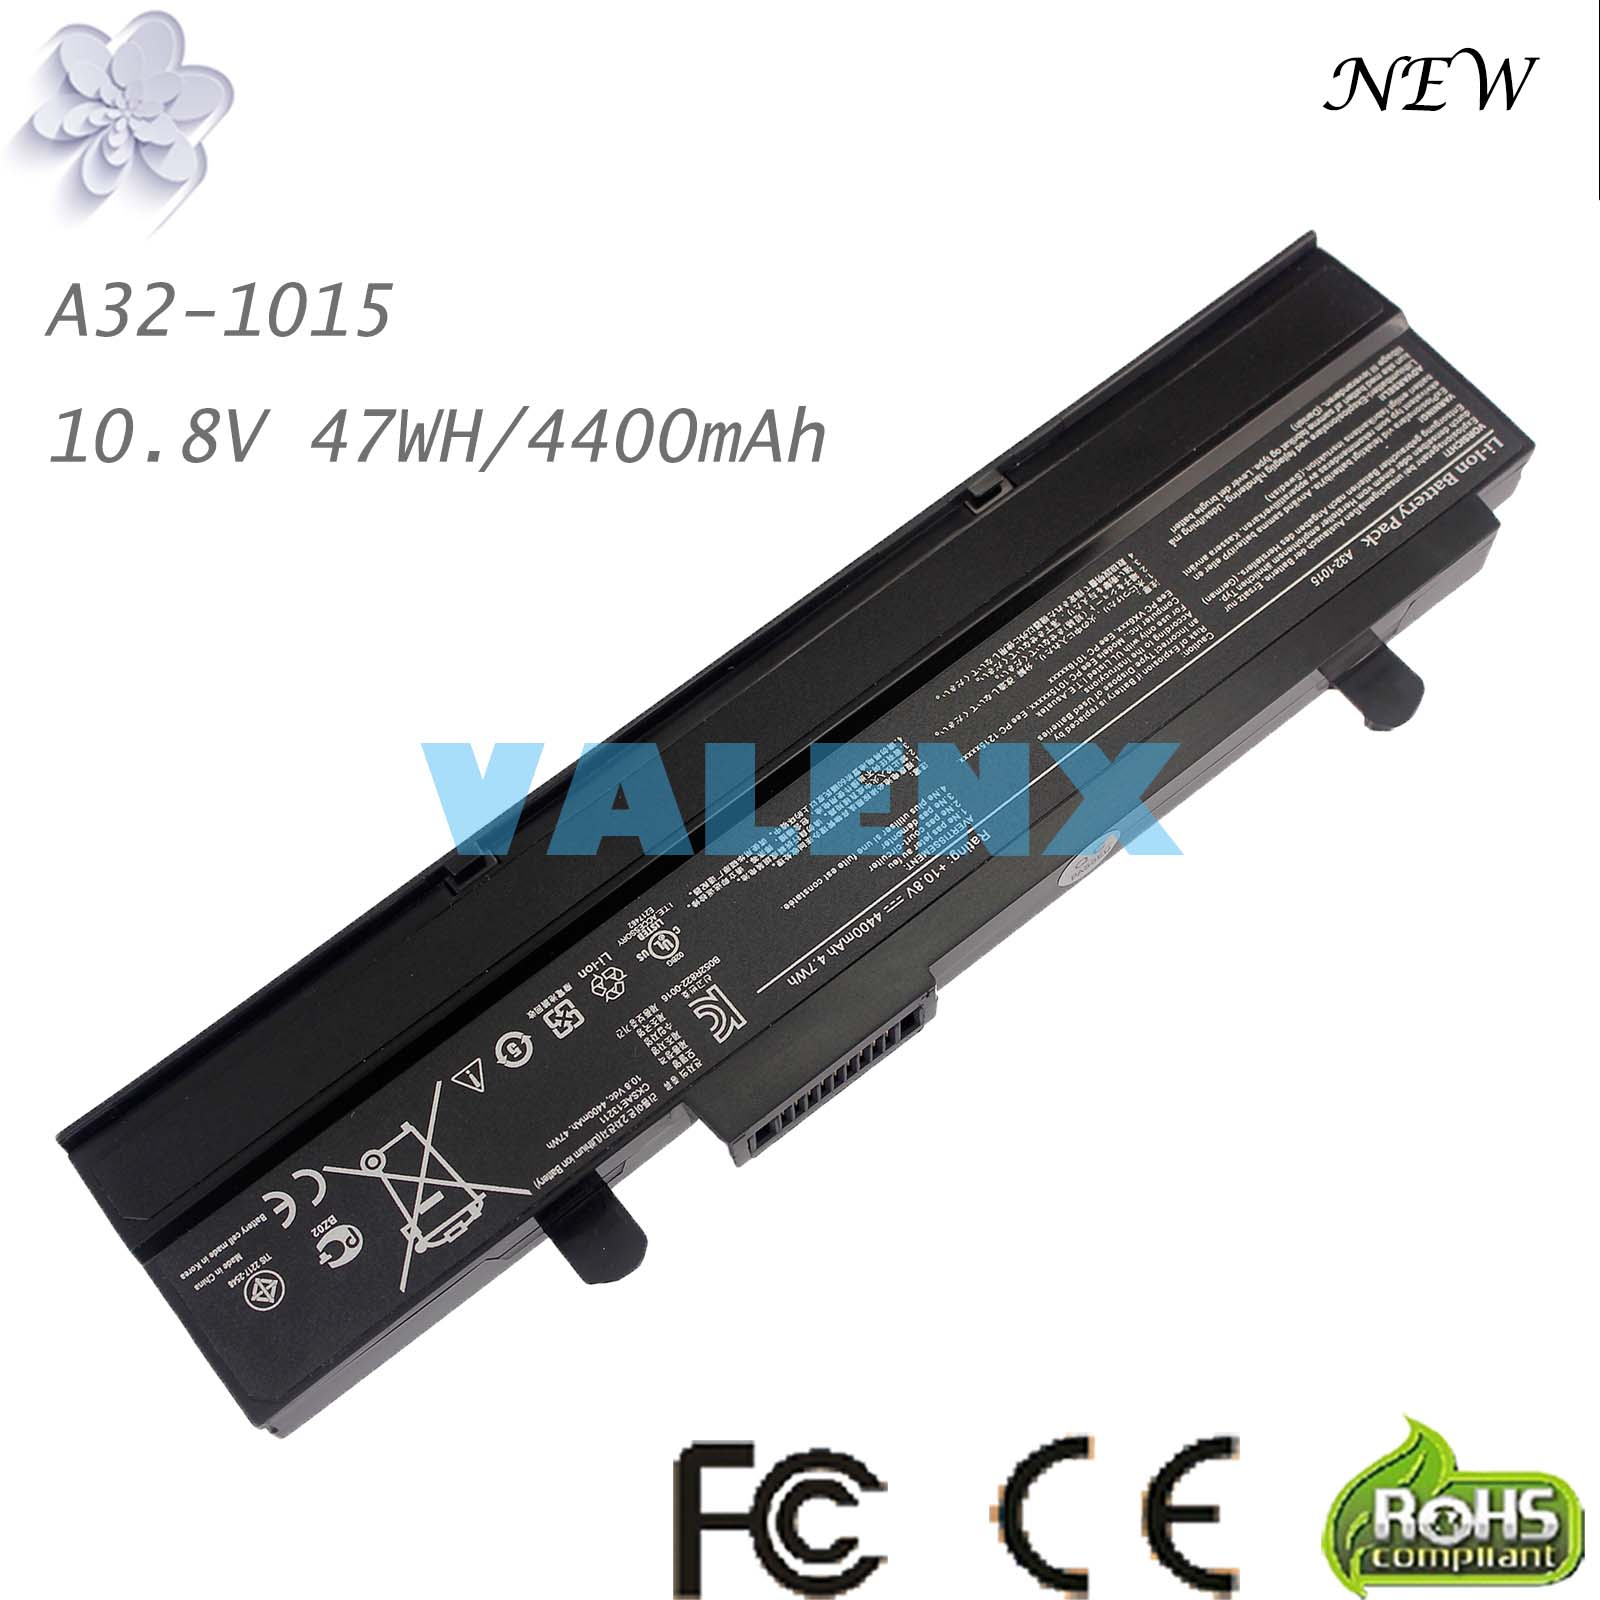 laptop Battery For Asus Eee PC EPC 1215 PC 1215B 1215N 1015b <font><b>1015</b></font> 1015bx 1015px 1015p A31-<font><b>1015</b></font> <font><b>A32</b></font>-<font><b>1015</b></font> AL31-<font><b>1015</b></font> image